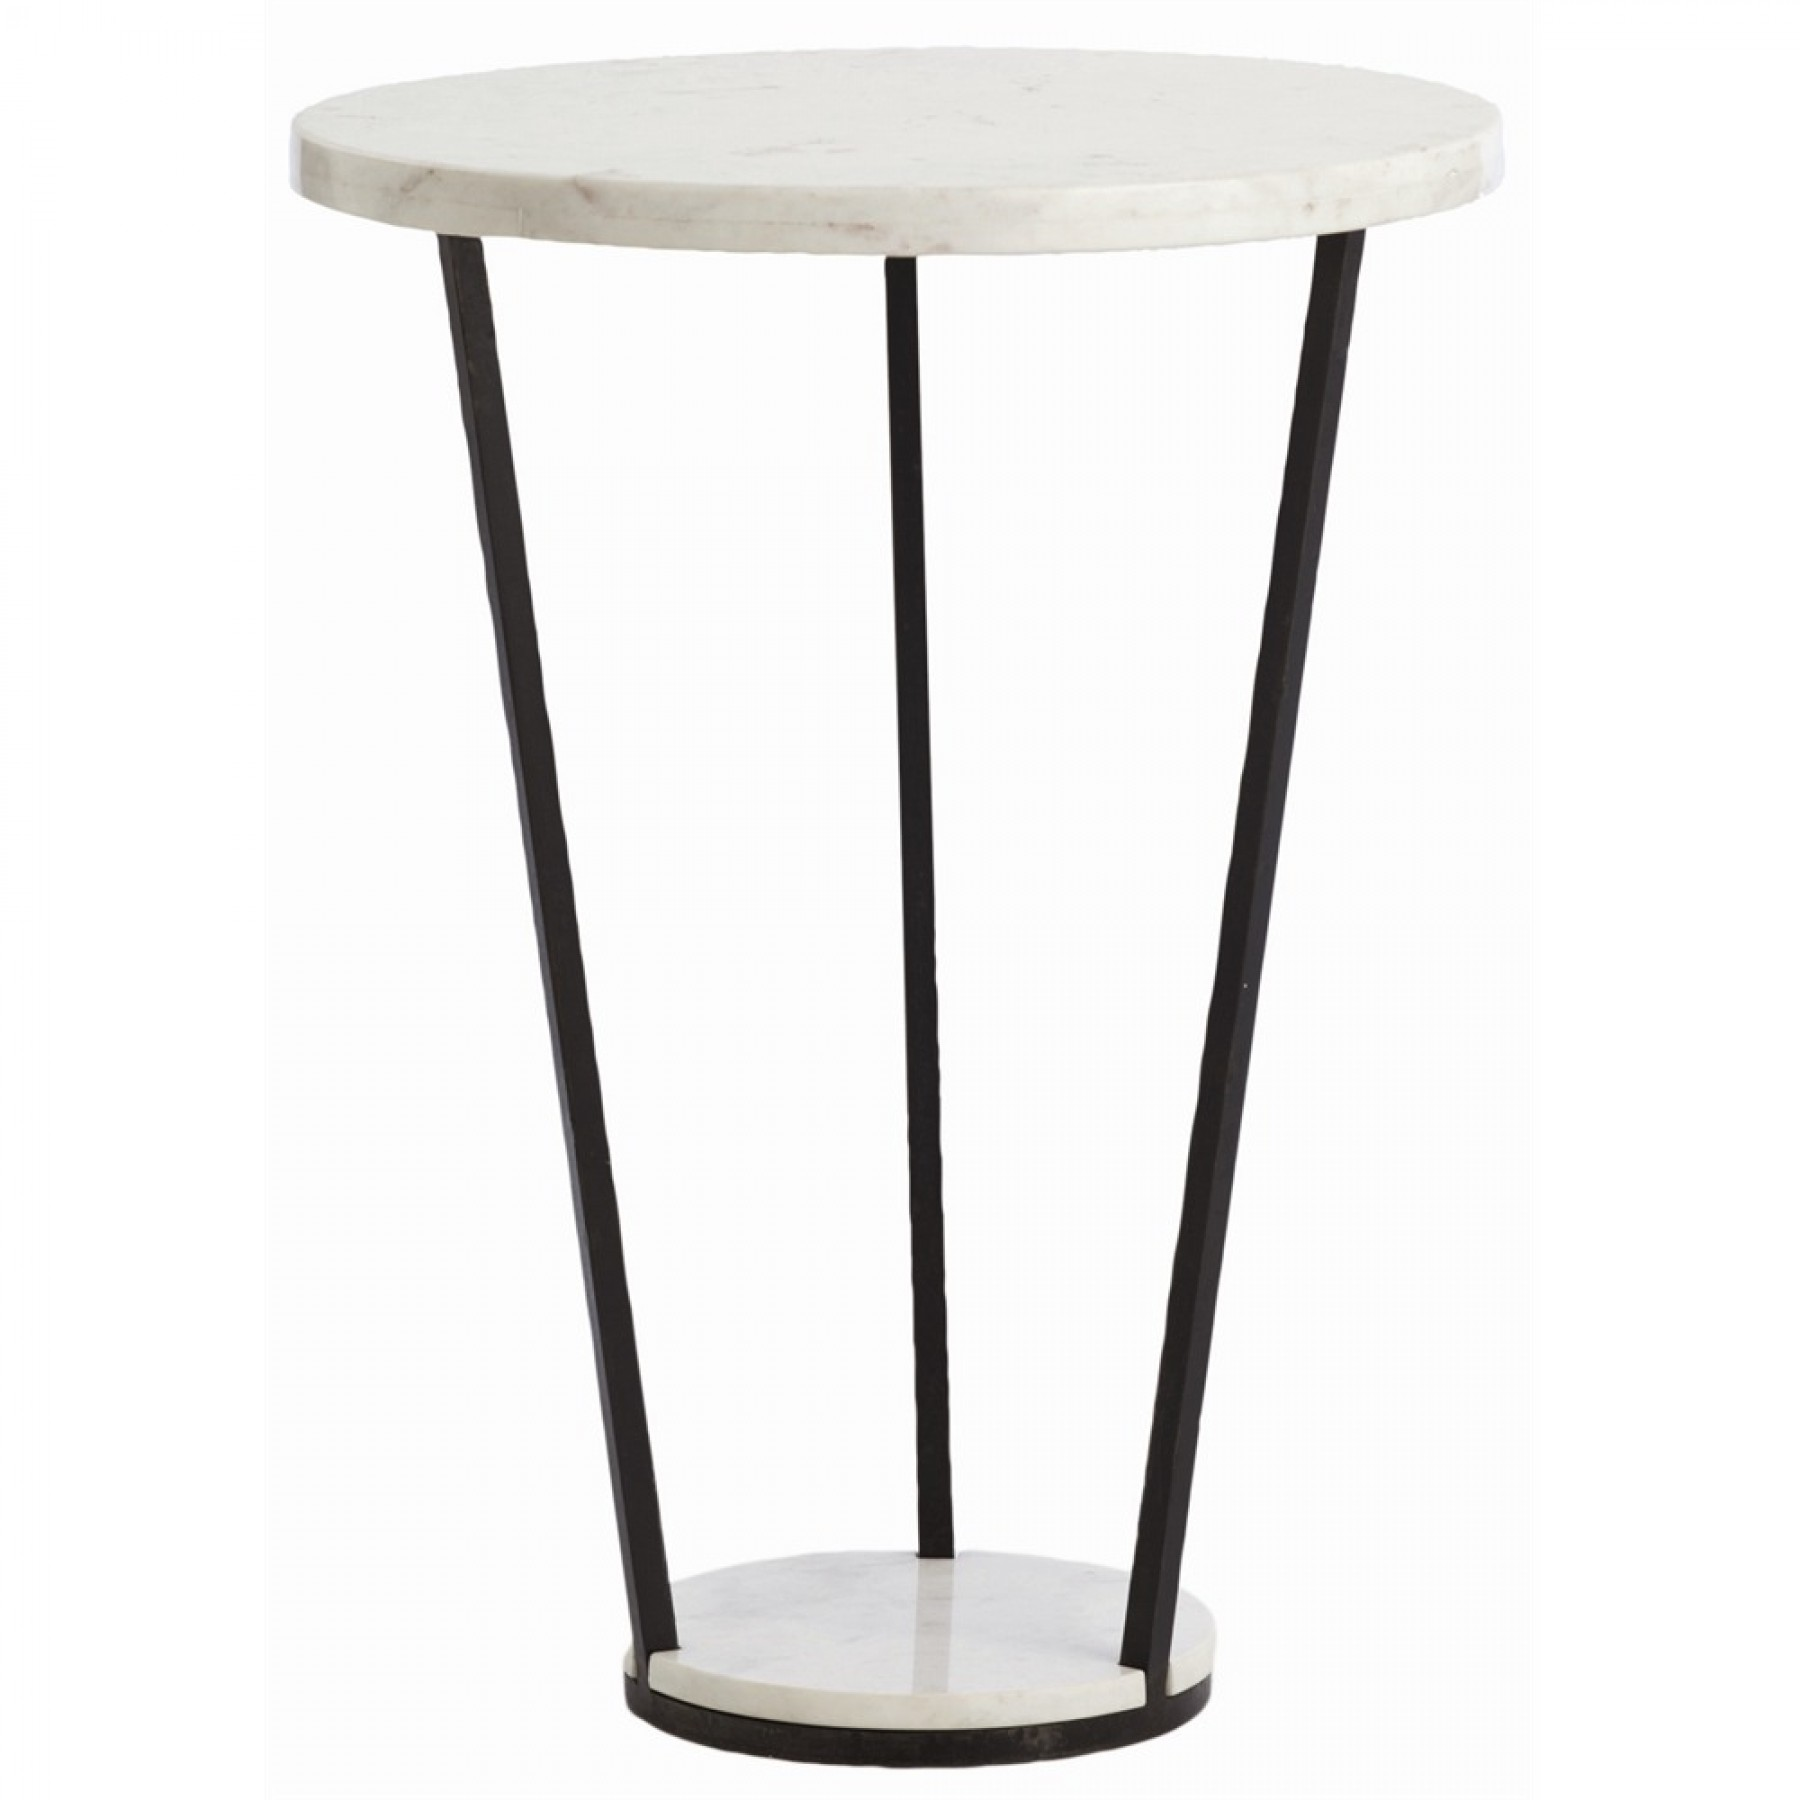 petra side table white marble accent pulaski sofa restoration hardware sectional unfinished pine top folding tablecloth for small round bedside with drawers lamp shades carpet